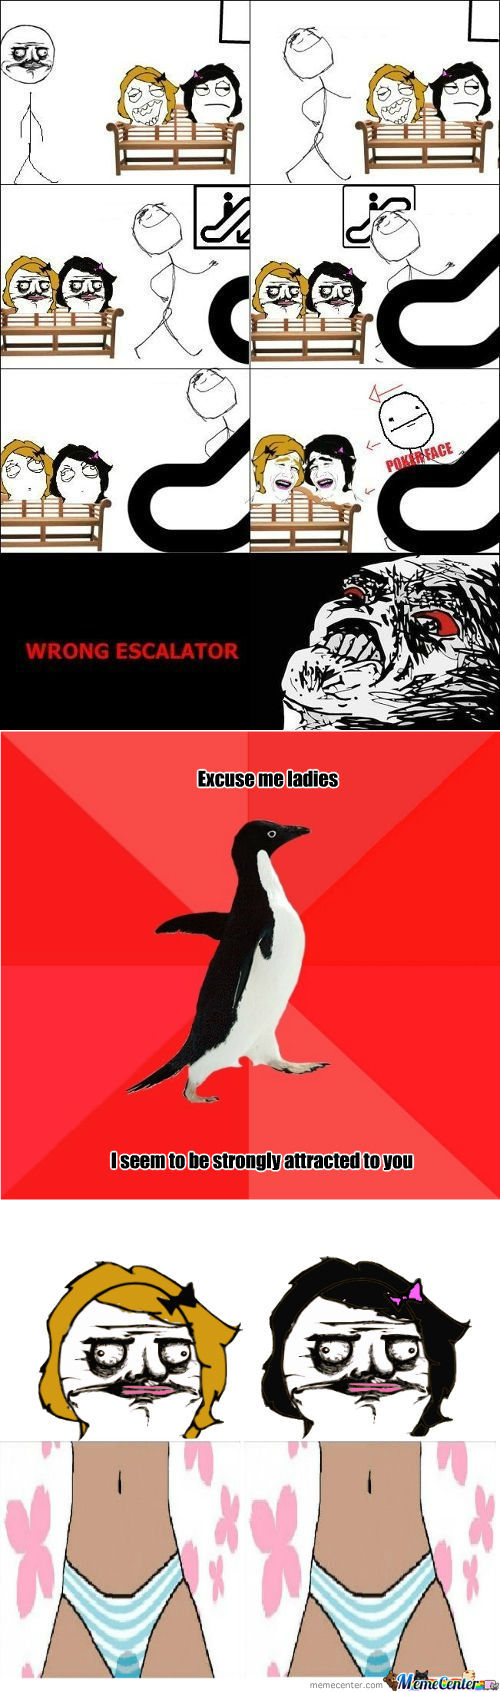 [RMX] Wrong Escalator